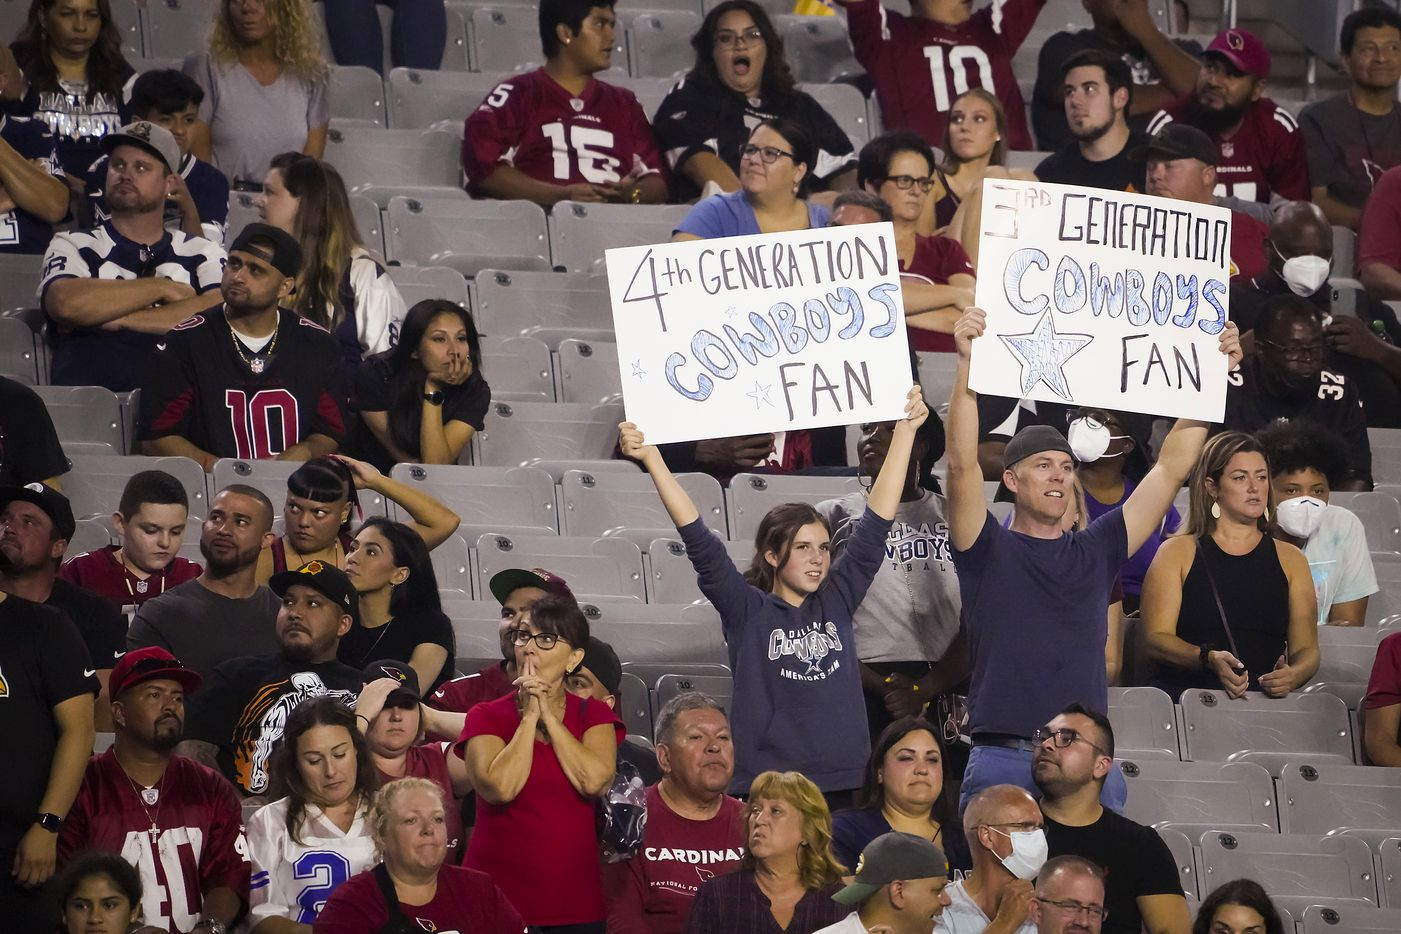 Dallas Cowboys fans cheer their team during the second half of a preseason NFL football game against the Arizona Cardinals at State Farm Stadium on Friday, Aug. 13, 2021, in Glendale, Ariz.